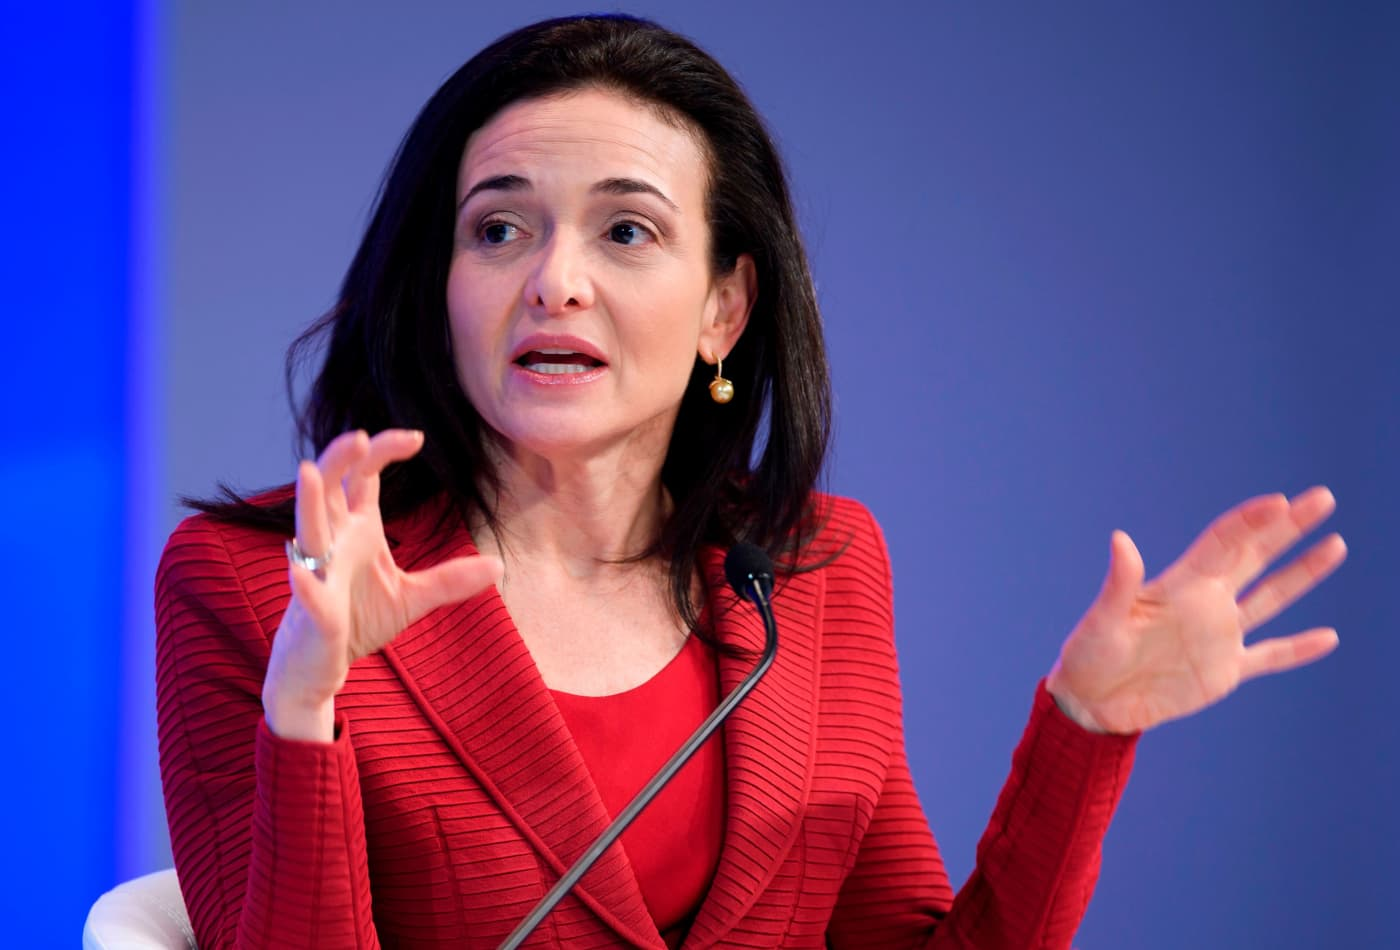 Sheryl Sandberg: Facebook didn't do enough to stop risks